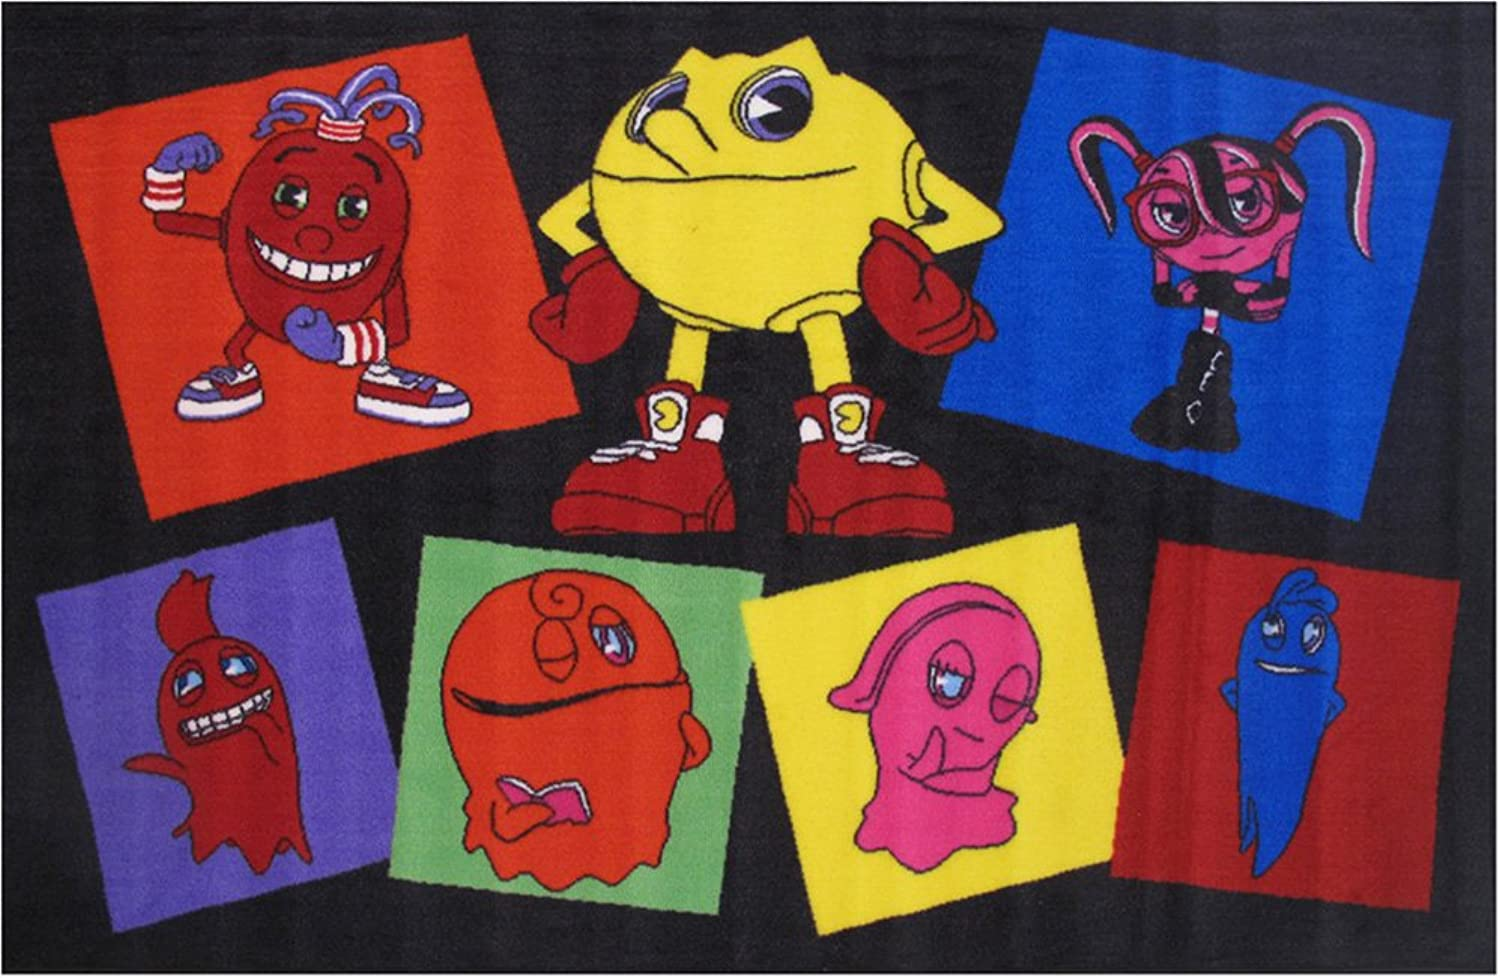 Fun Rugs PacMan Pac Party Novelty Rug, 39 x 58